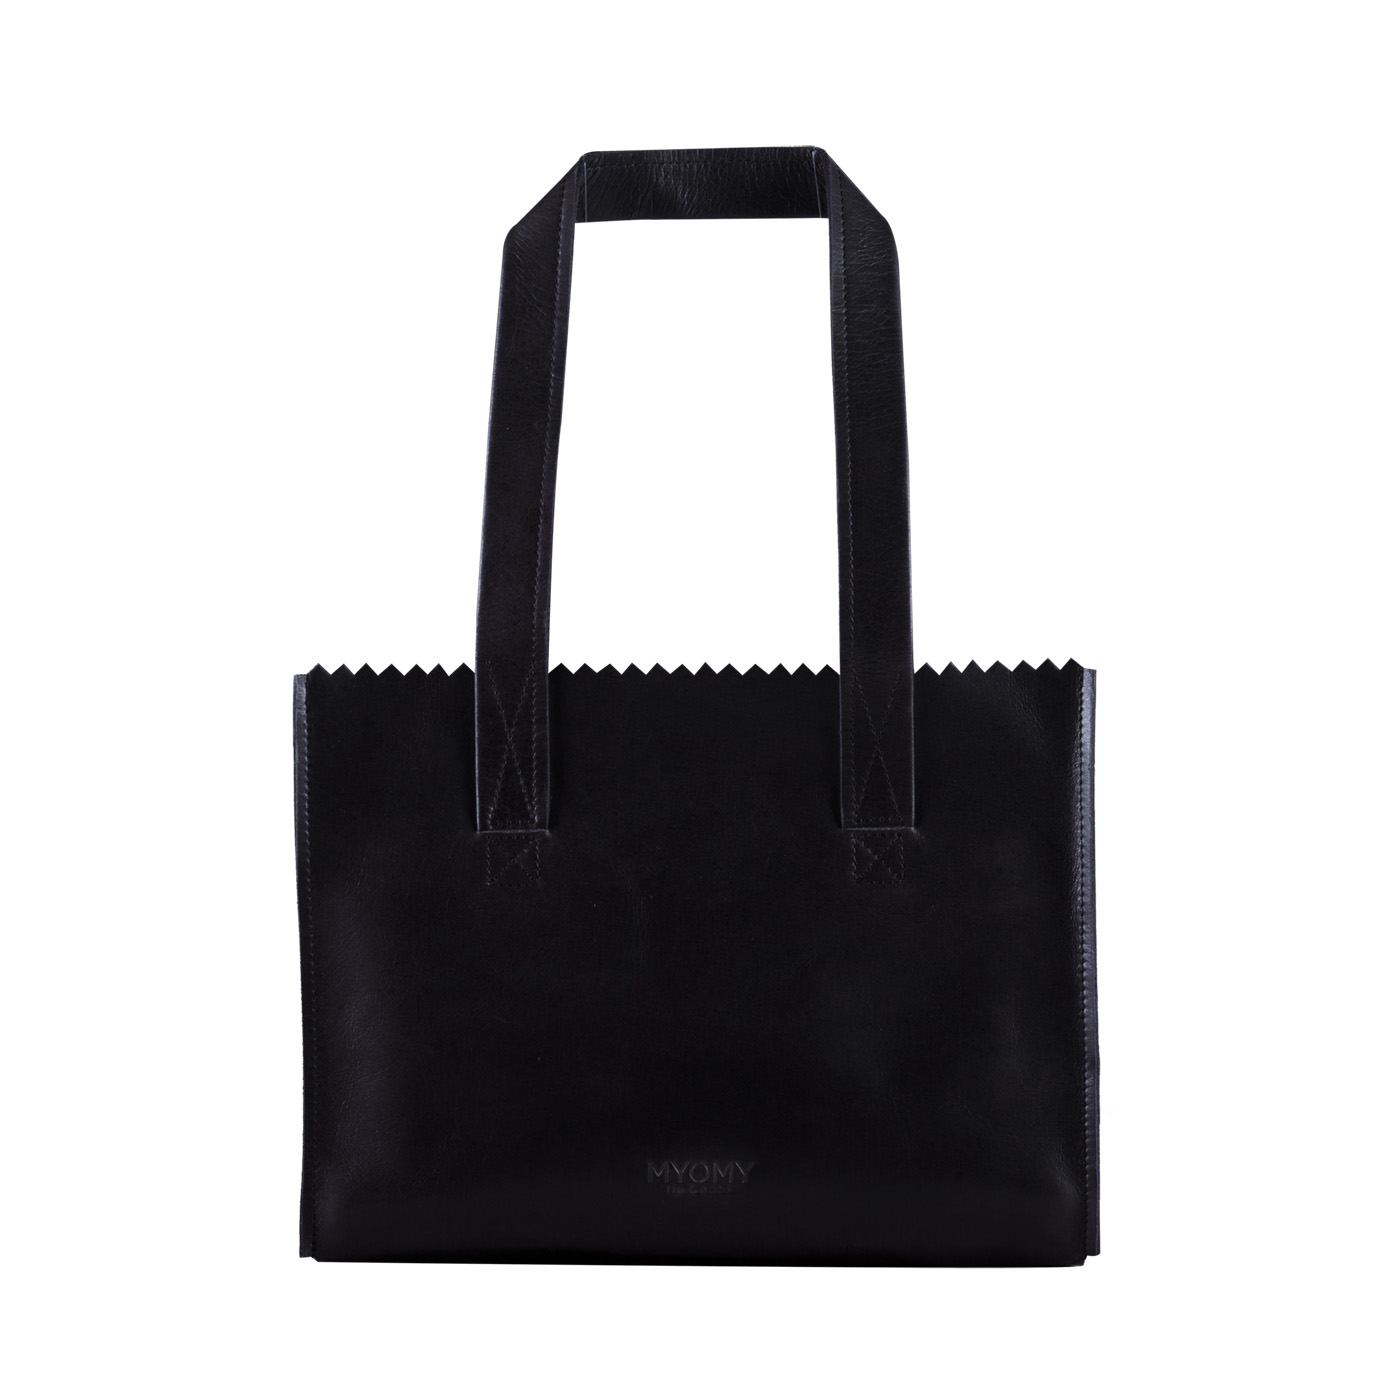 MY PAPER BAG Handbag – hunter waxy black